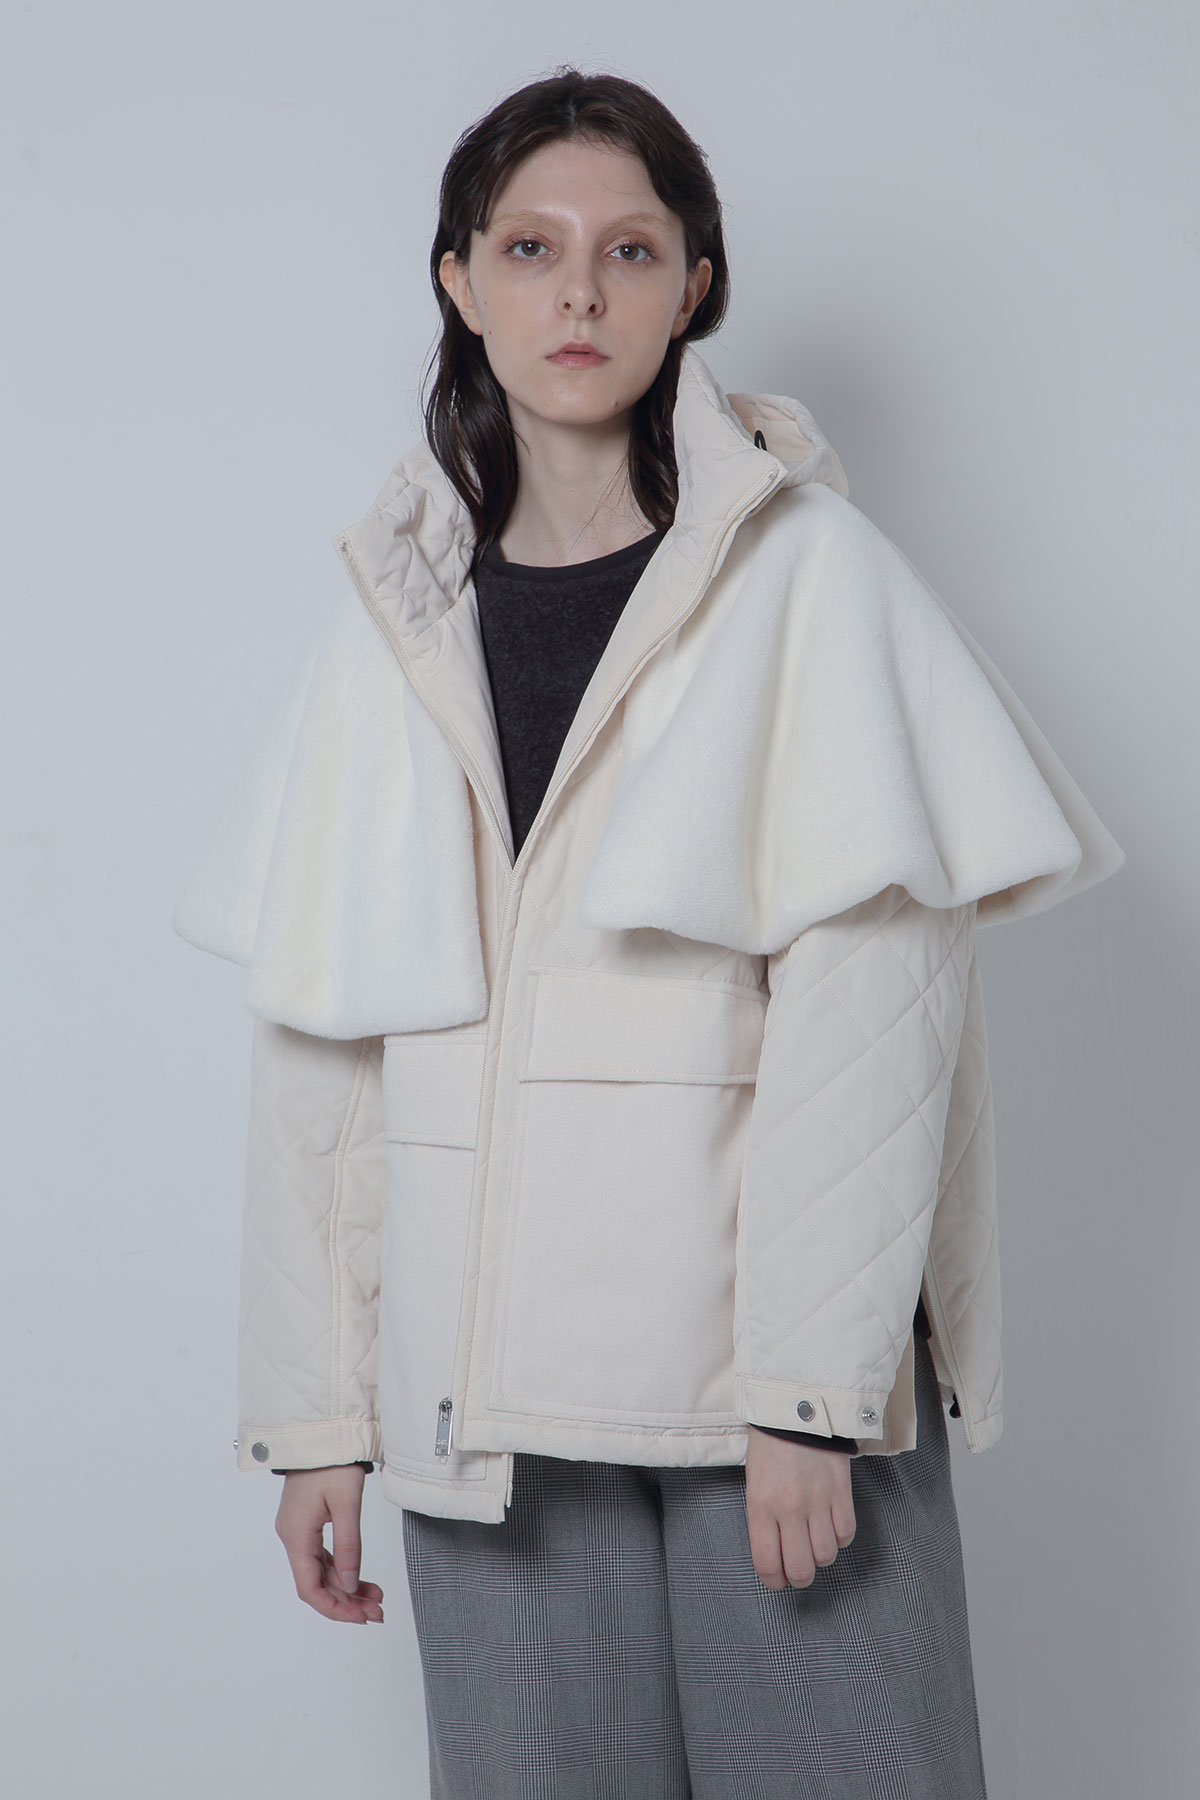 BO205109-white Sastainable Fur×Padded Weather Connect snorkelJacket -WHITE-【BO205109】Del.Oct.